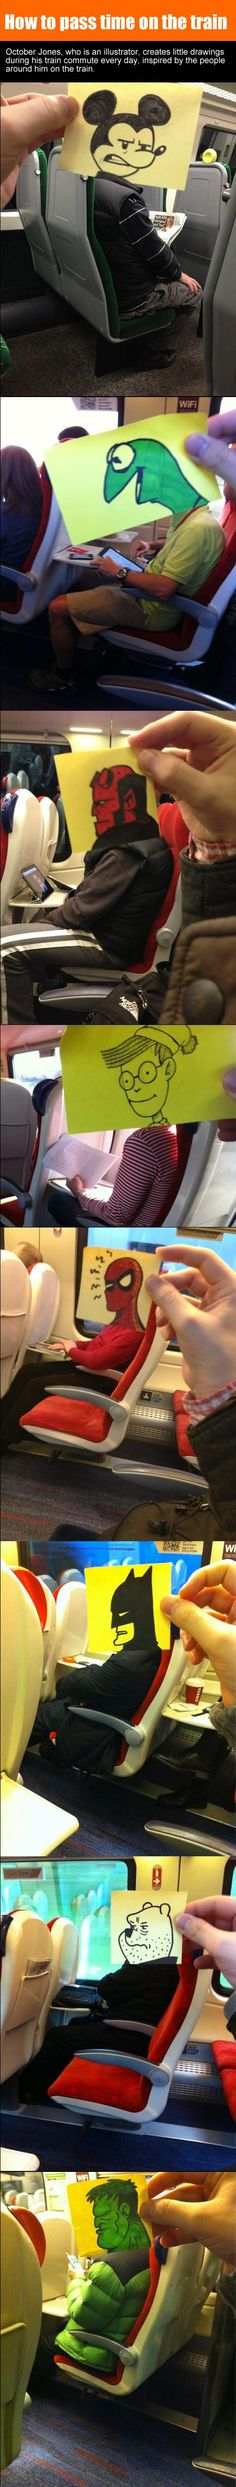 how to pass time on the train